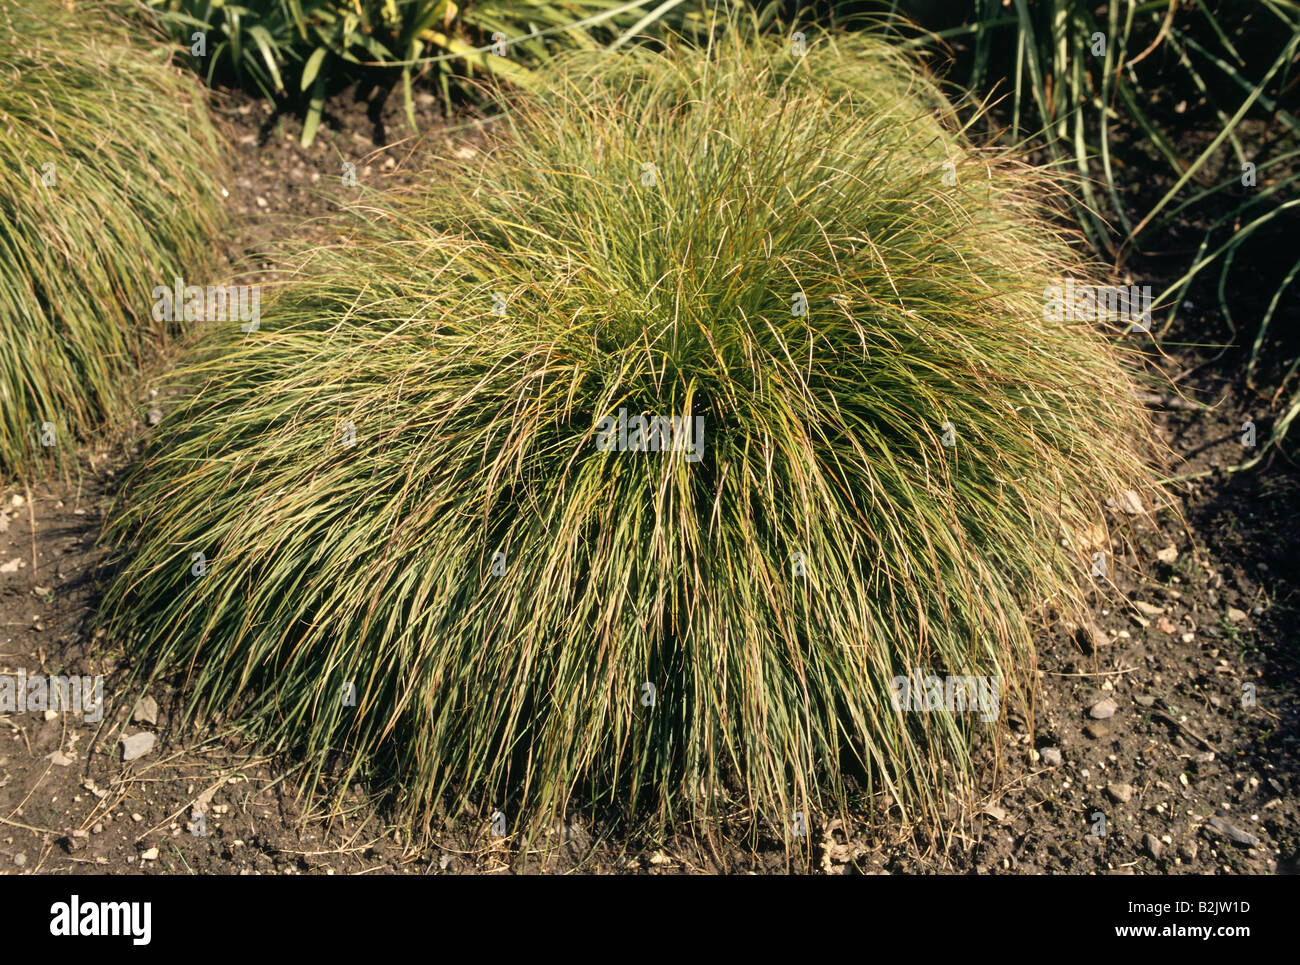 botany, Harefoot Sedge (Carex leorina), shrub, Additional-Rights-Clearance-Info-Not-Available - Stock Image